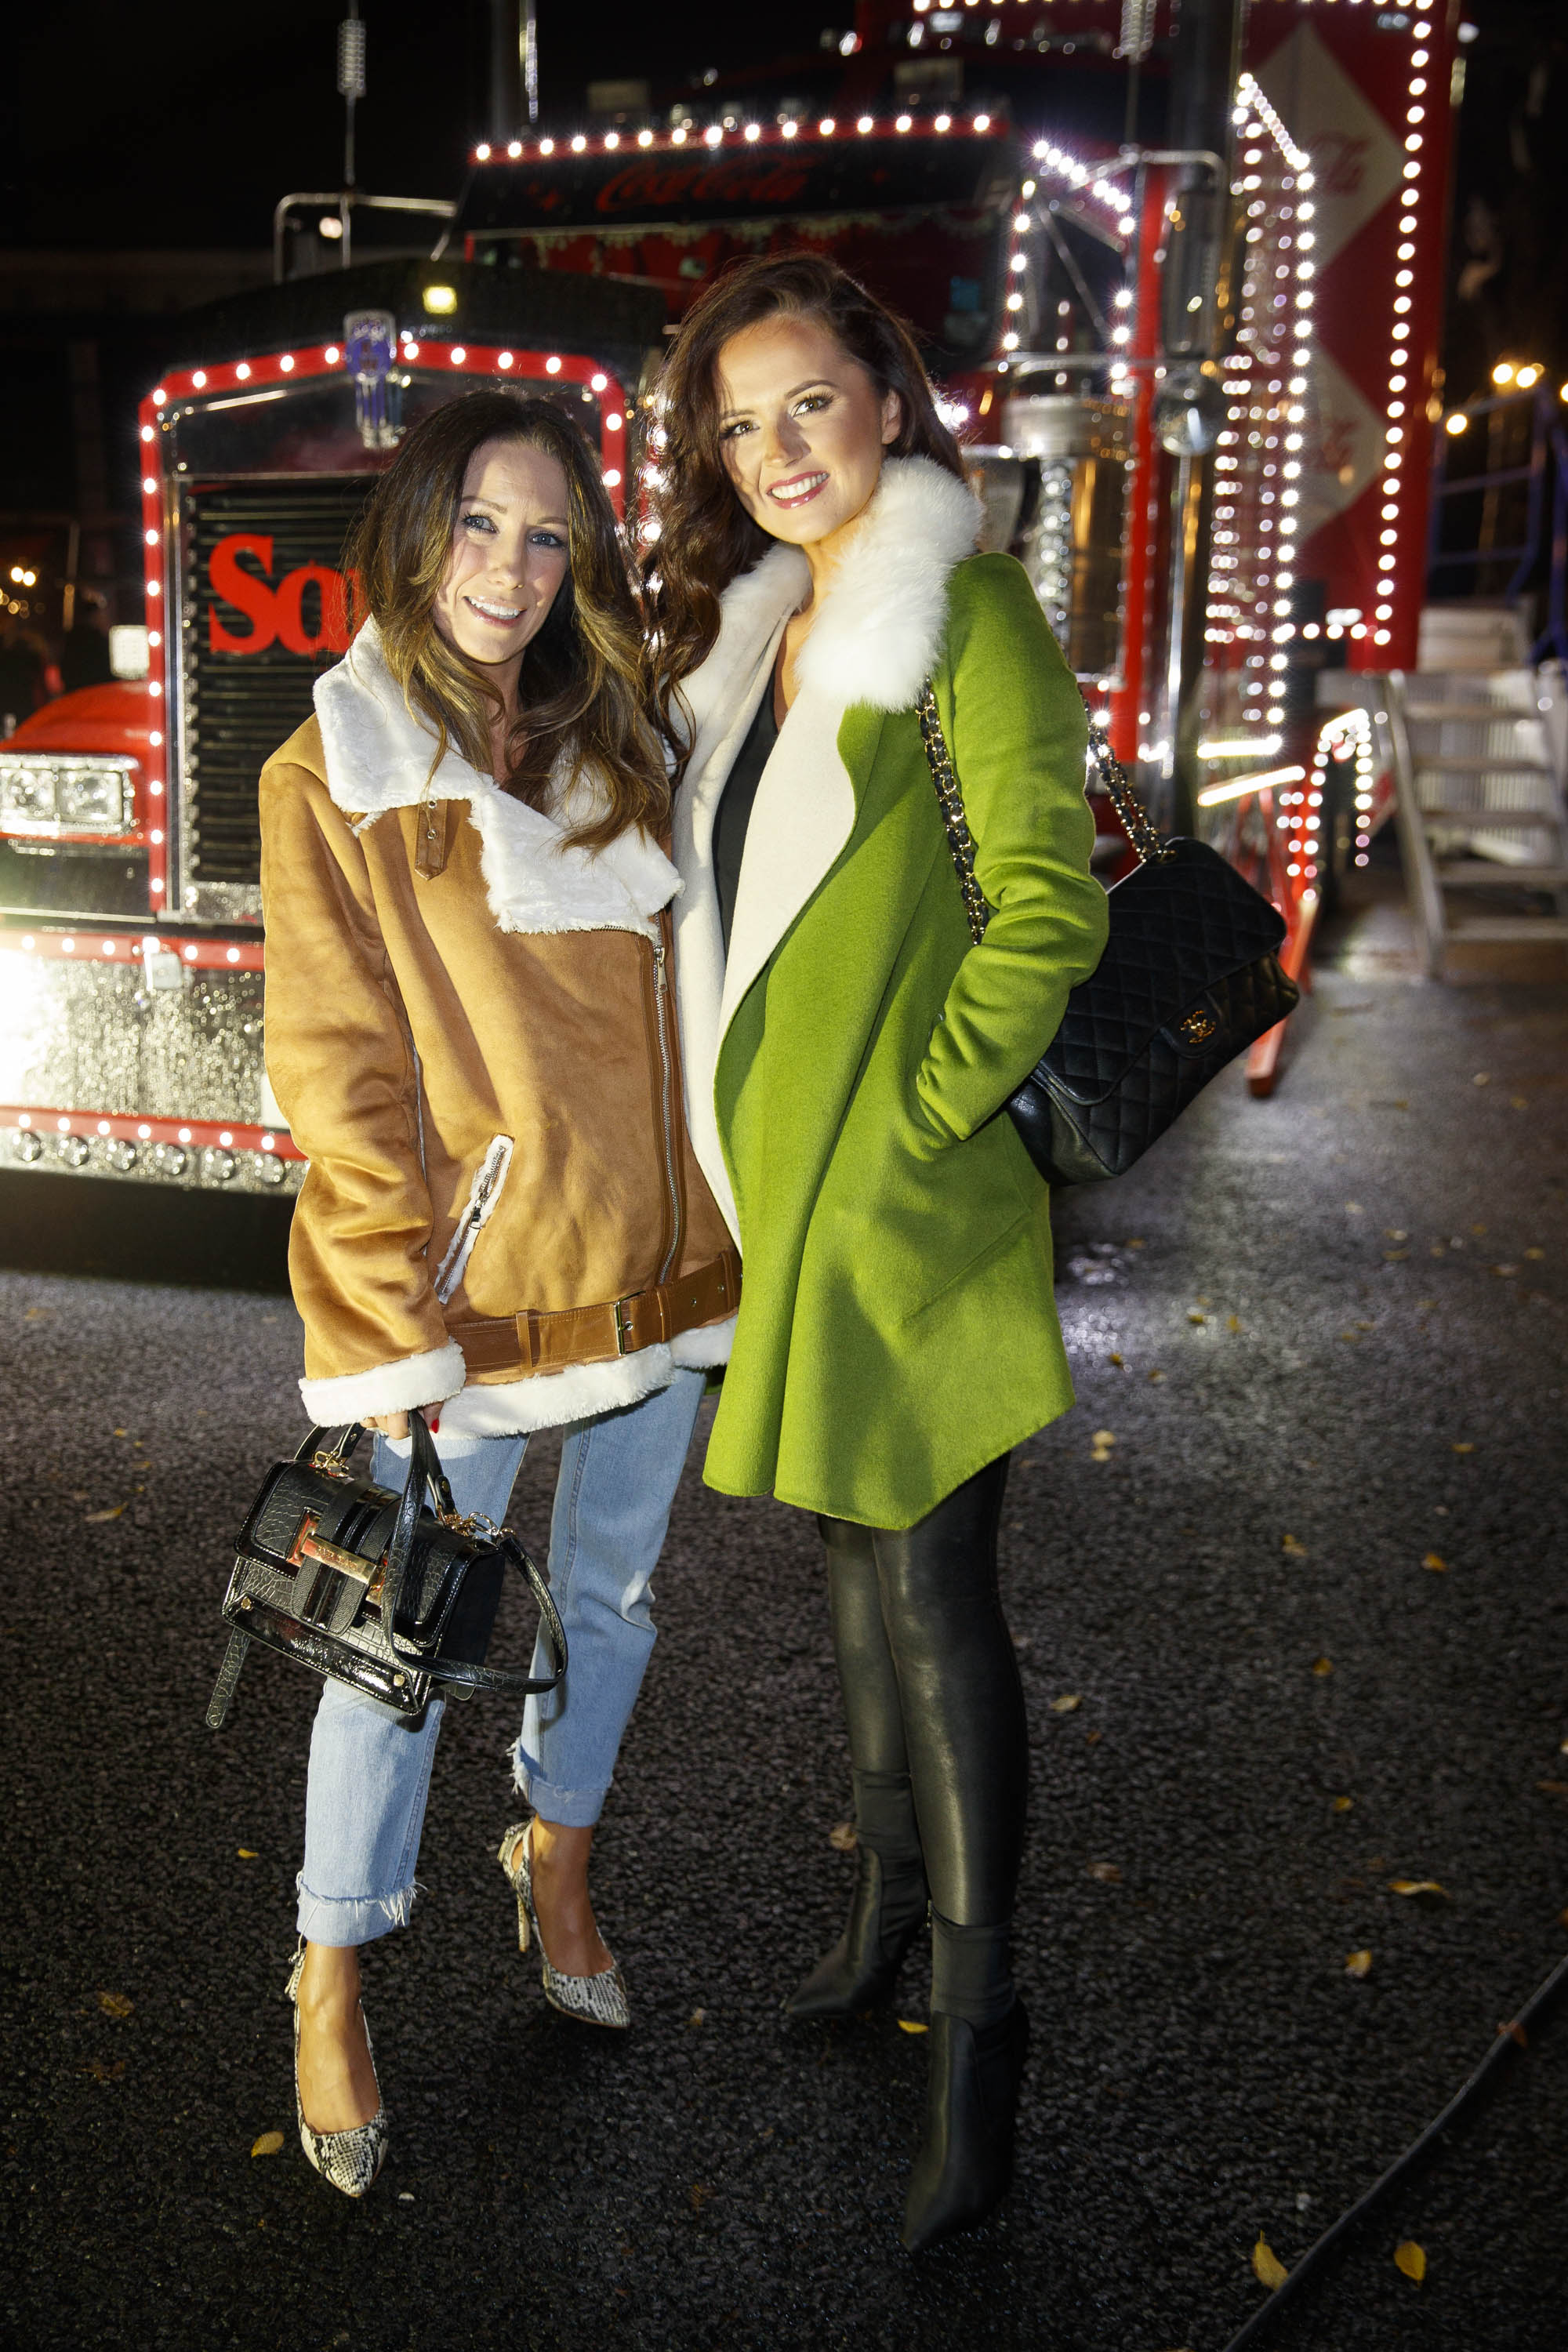 Claire Tenwick and Jennifer Wrynne pictured at Coca-Cola's Christmas Truck Tour launch which took place Monday 25th November at the RDS, Dublin. Photo: Andres Poveda